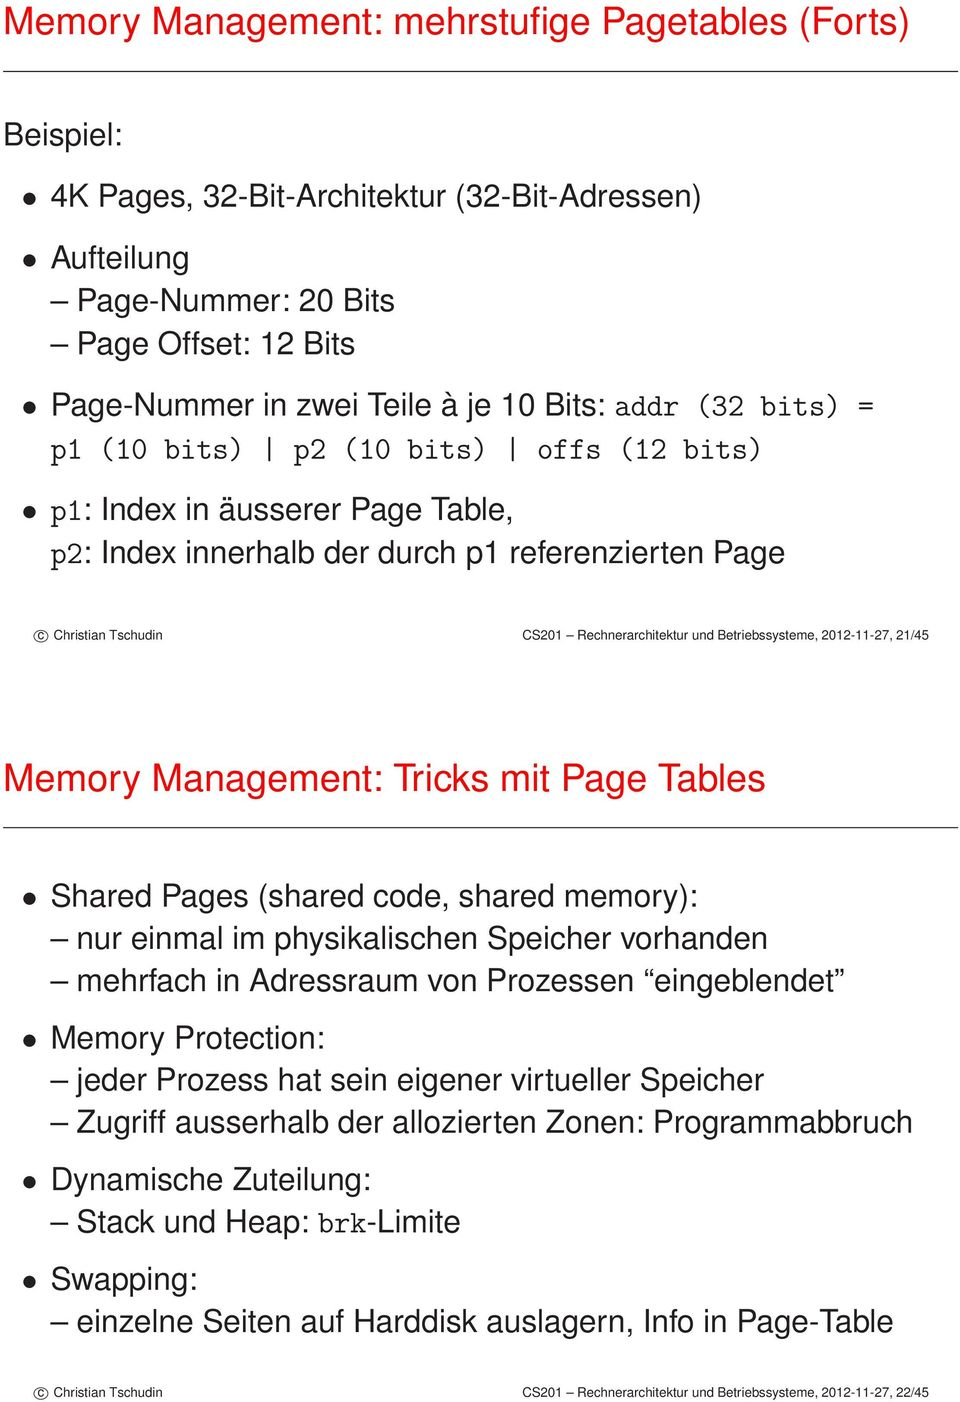 Betriebssysteme, 2012-11-27, 21/45 Memory Management: Tricks mit Page Tables Shared Pages (shared code, shared memory): nur einmal im physikalischen Speicher vorhanden mehrfach in Adressraum von